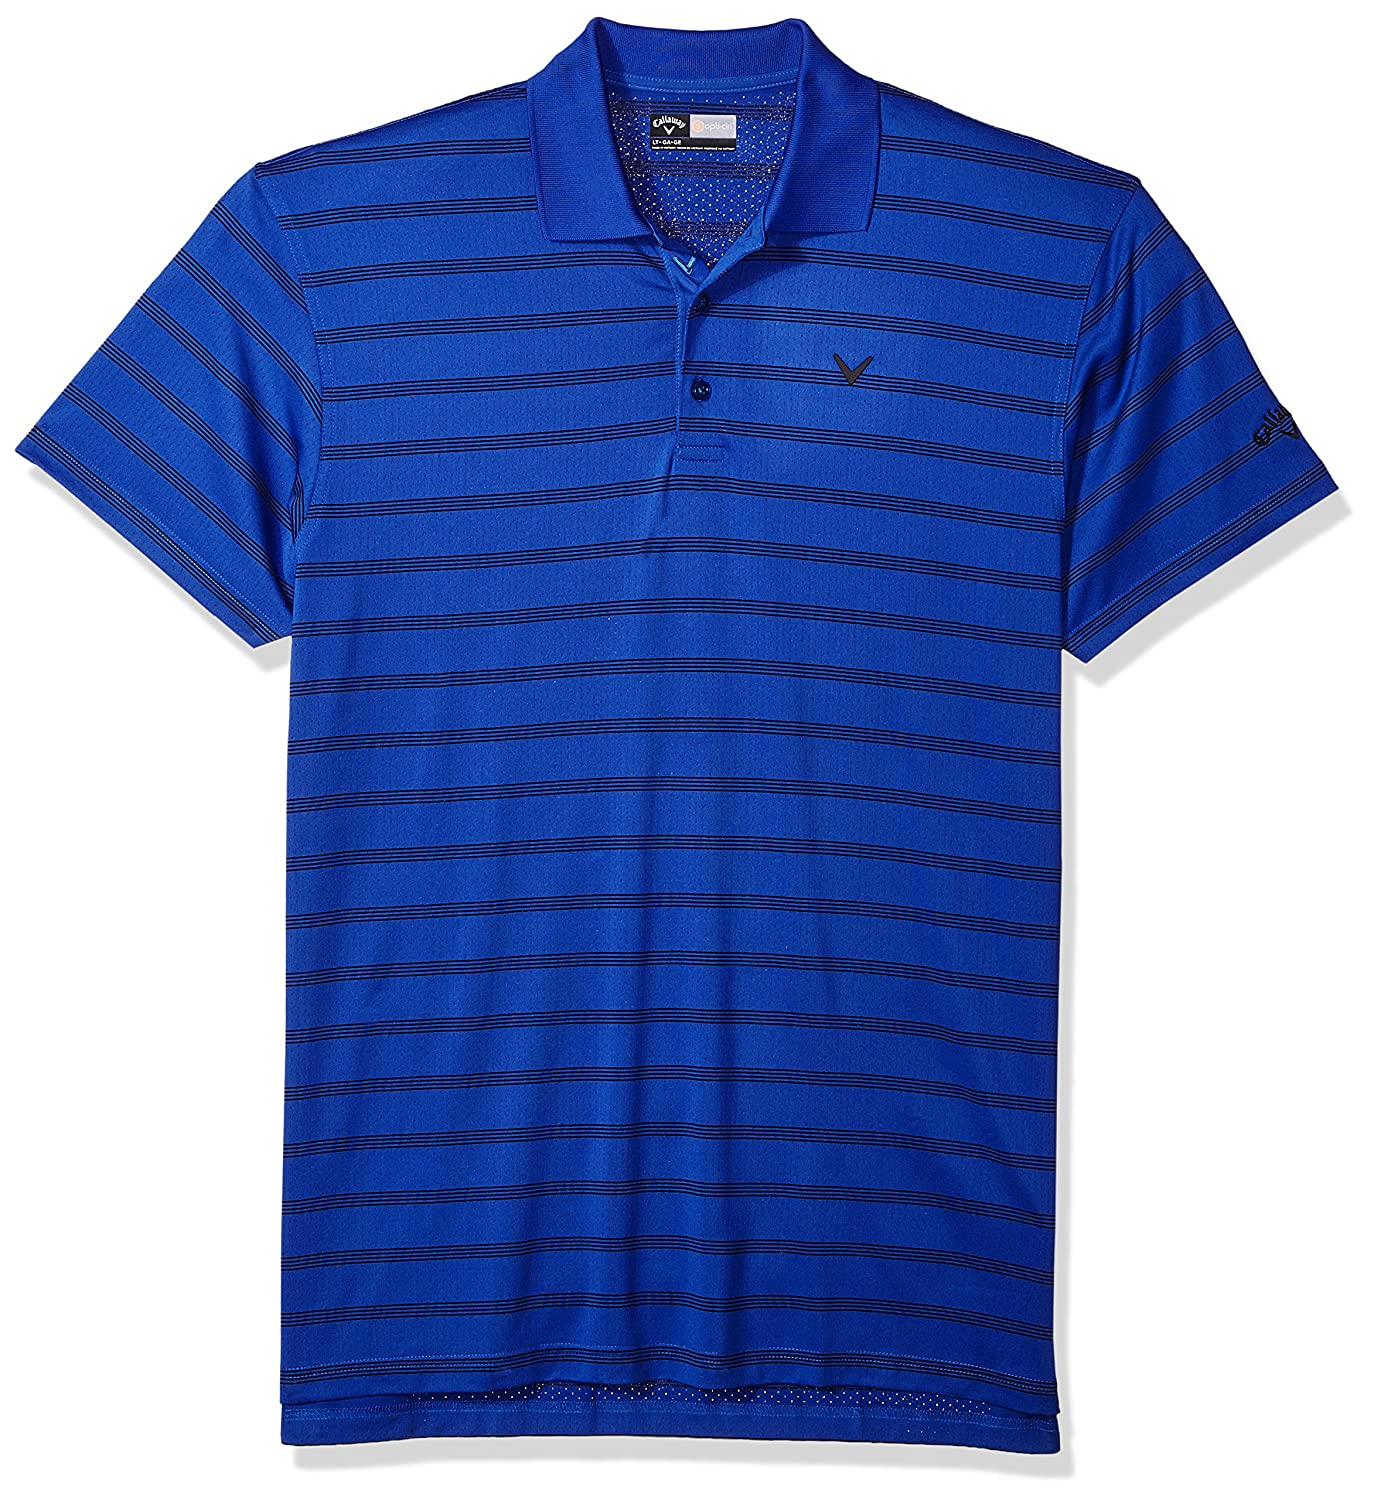 3b64d3020 Top 10 wholesale Where To Get Polo Shirts - Chinabrands.com